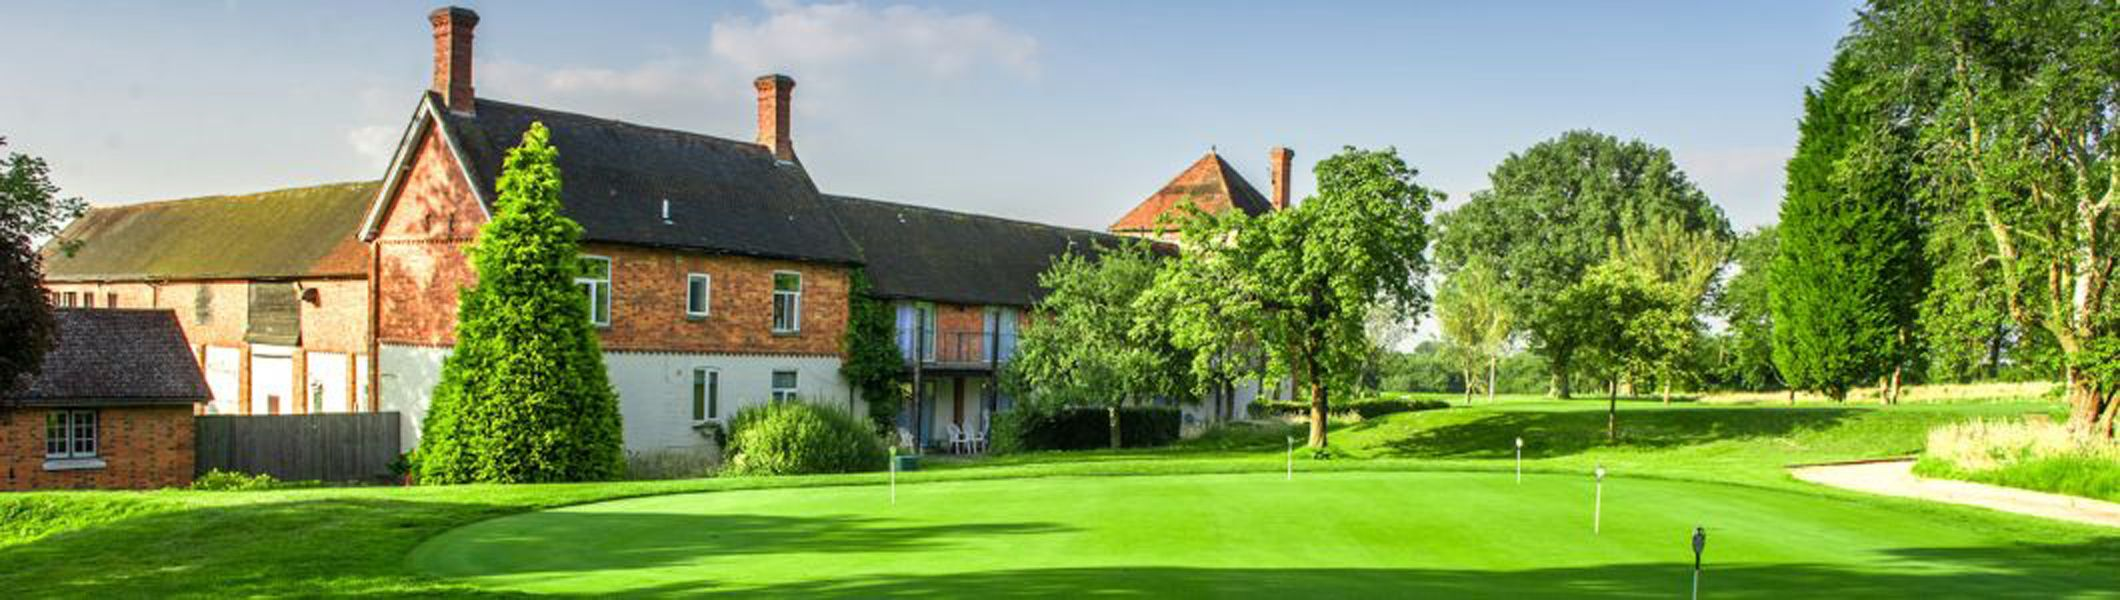 Cottesmore hotel golf and country club west sussex